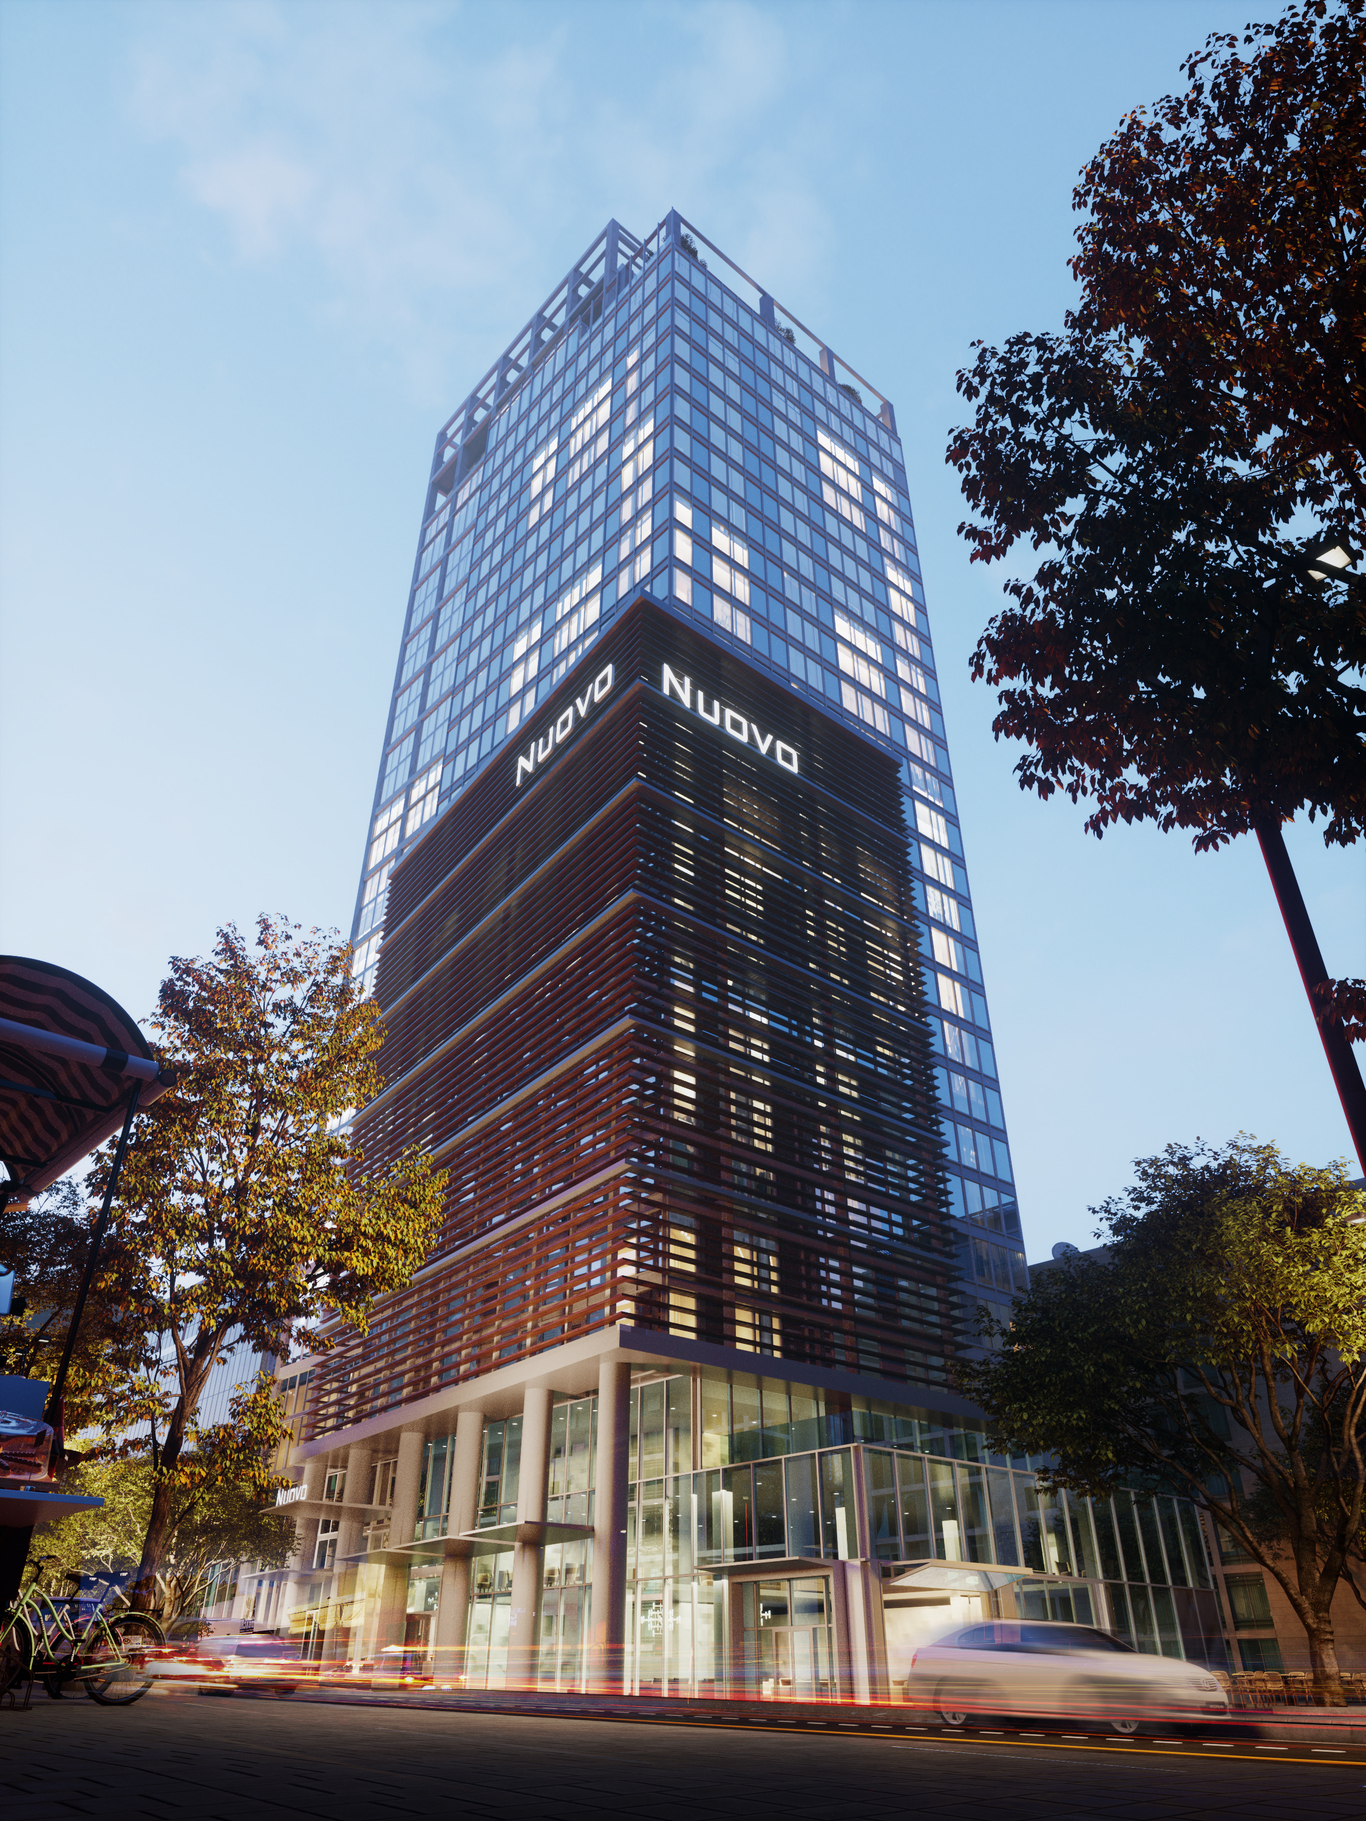 Vicnguyendessign canada building 1 61733419 syi6